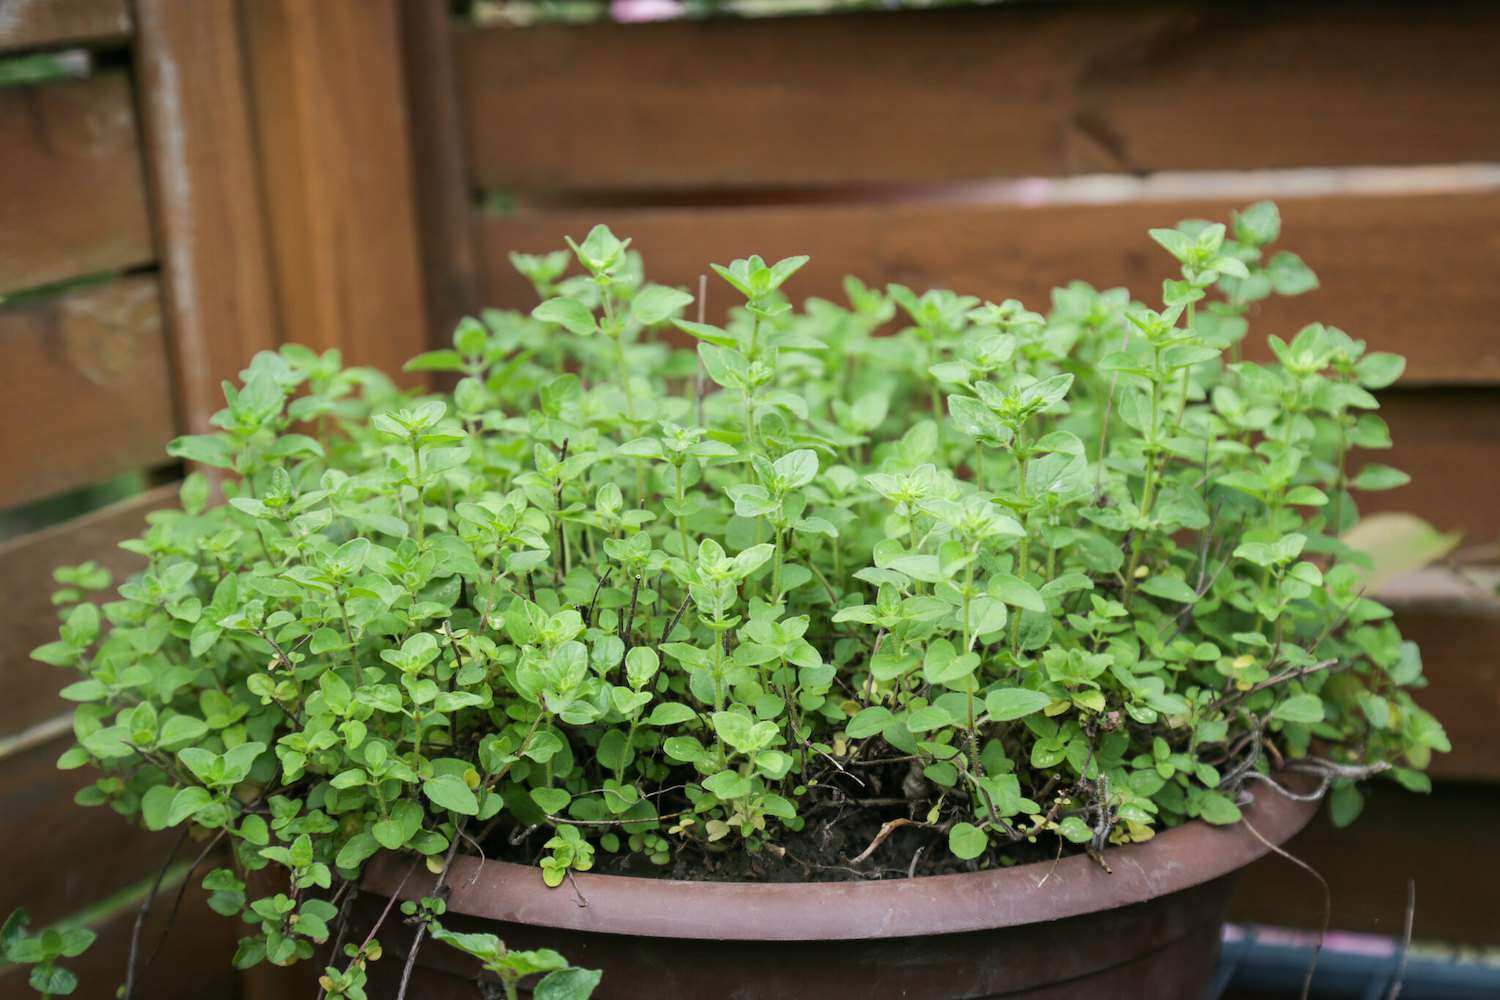 A cluster of thumbnail-sized oregano leaves grow in a pot